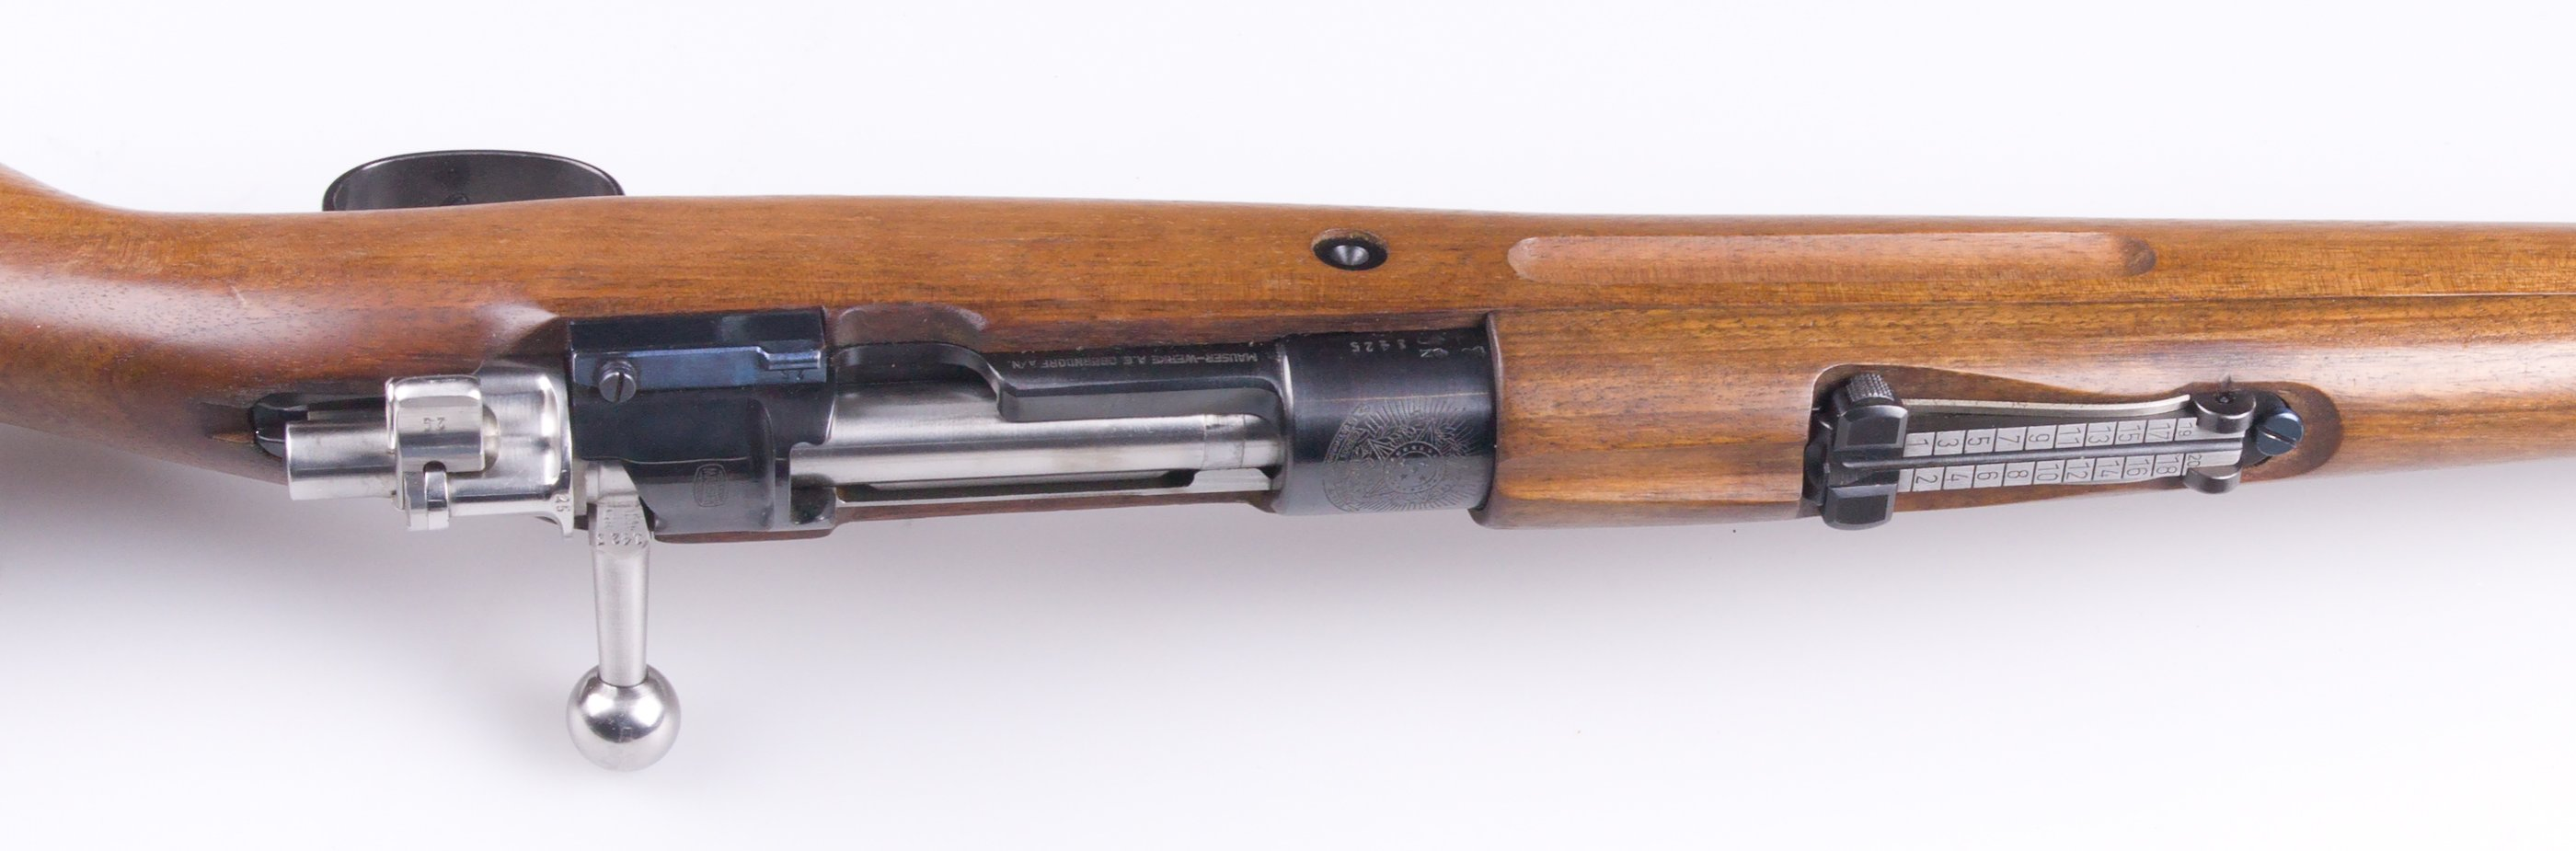 Click image for larger version.  Name:7mmMauser09.jpg Views:19 Size:221.0 KB ID:874584